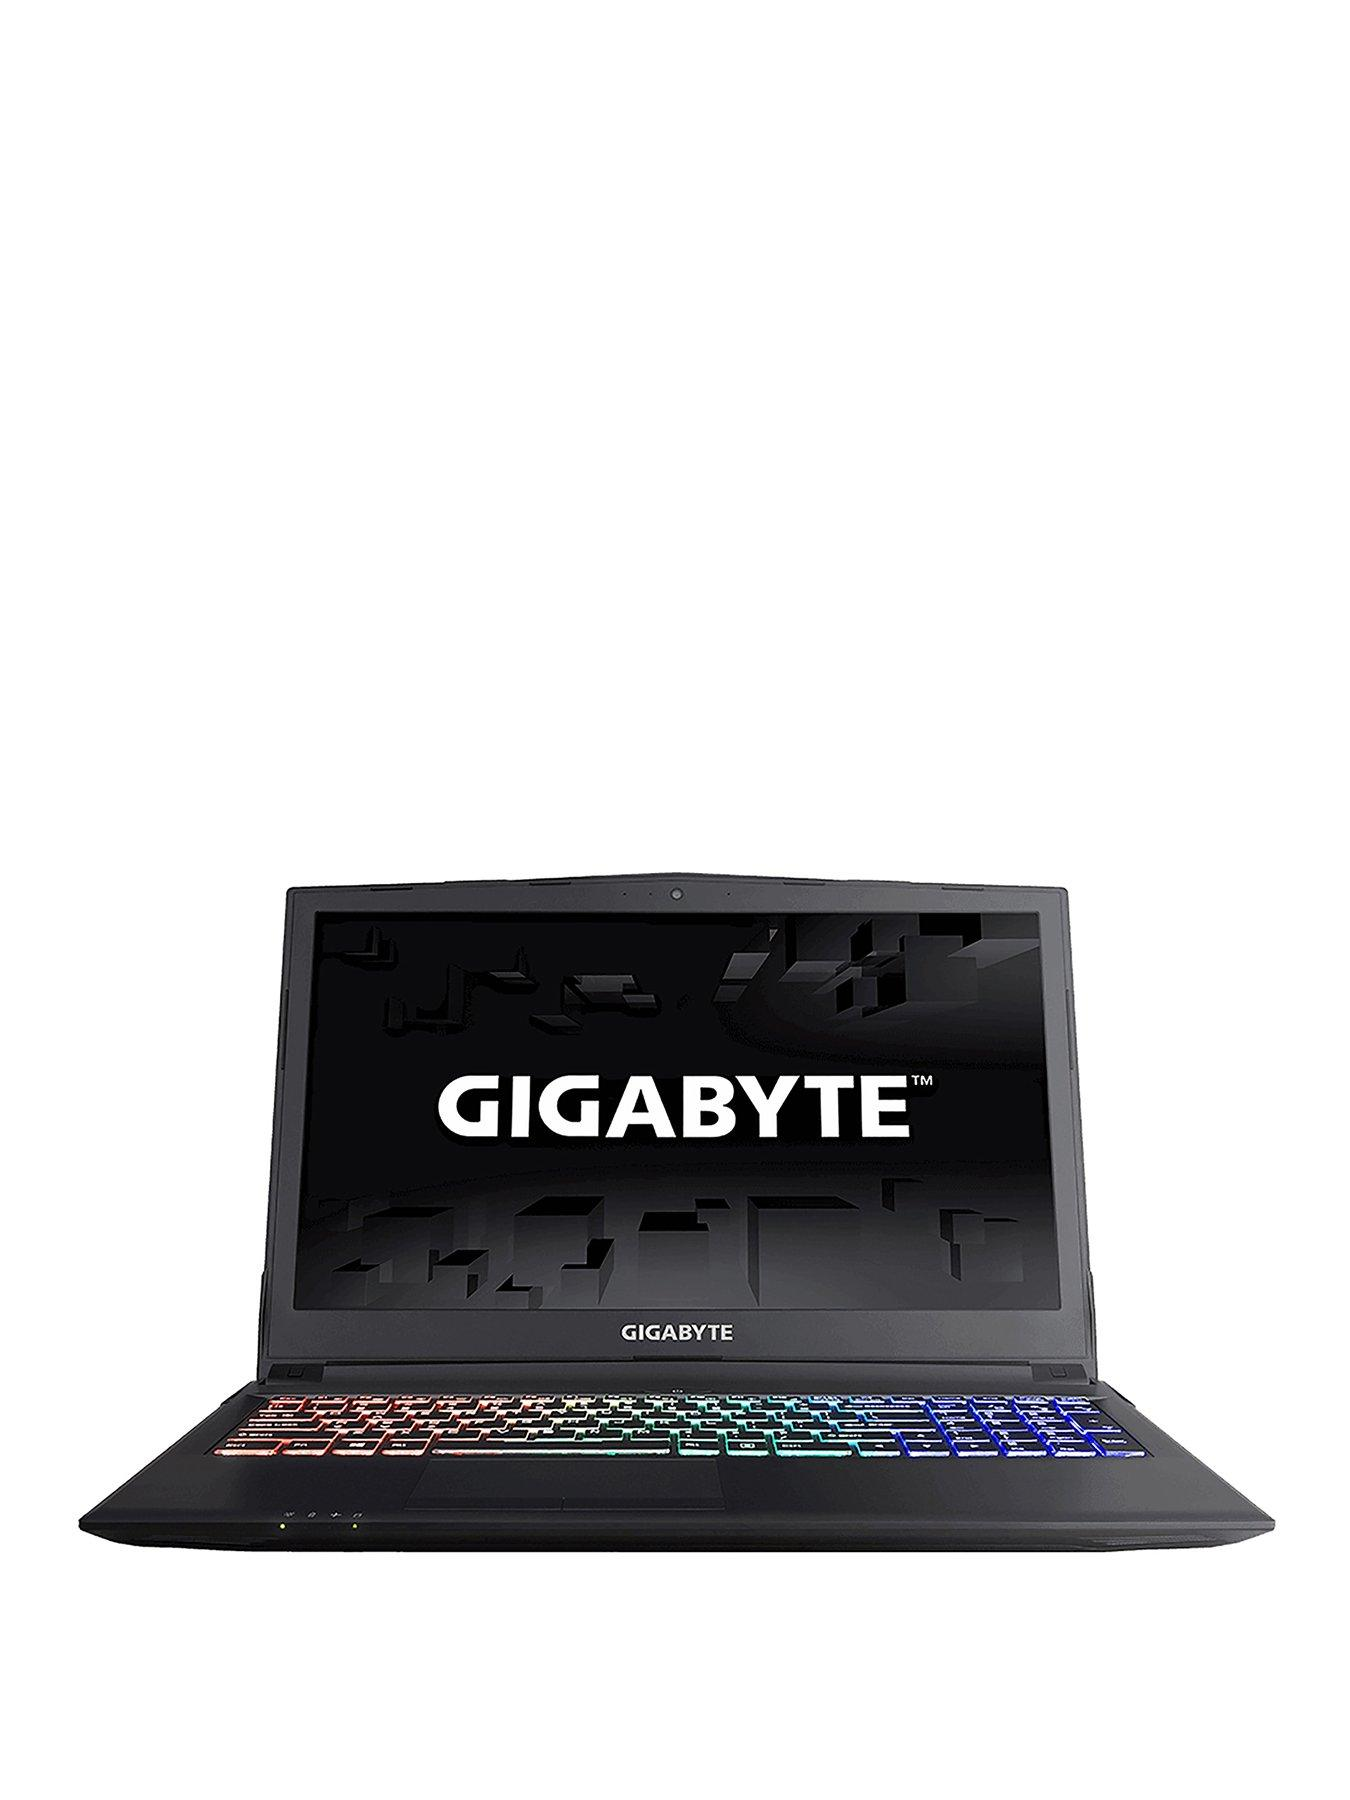 GIGABYTE SABRE15W 120Hz VR Ready, Intel® Core™ i7-8750H, GeForce GTX 1060 (6Gb), 256Gb PCIe SSD + 1Tb HDD, 16Gb RAM, 15.6 inch Gaming Laptop + Call of Duty Black Ops 4